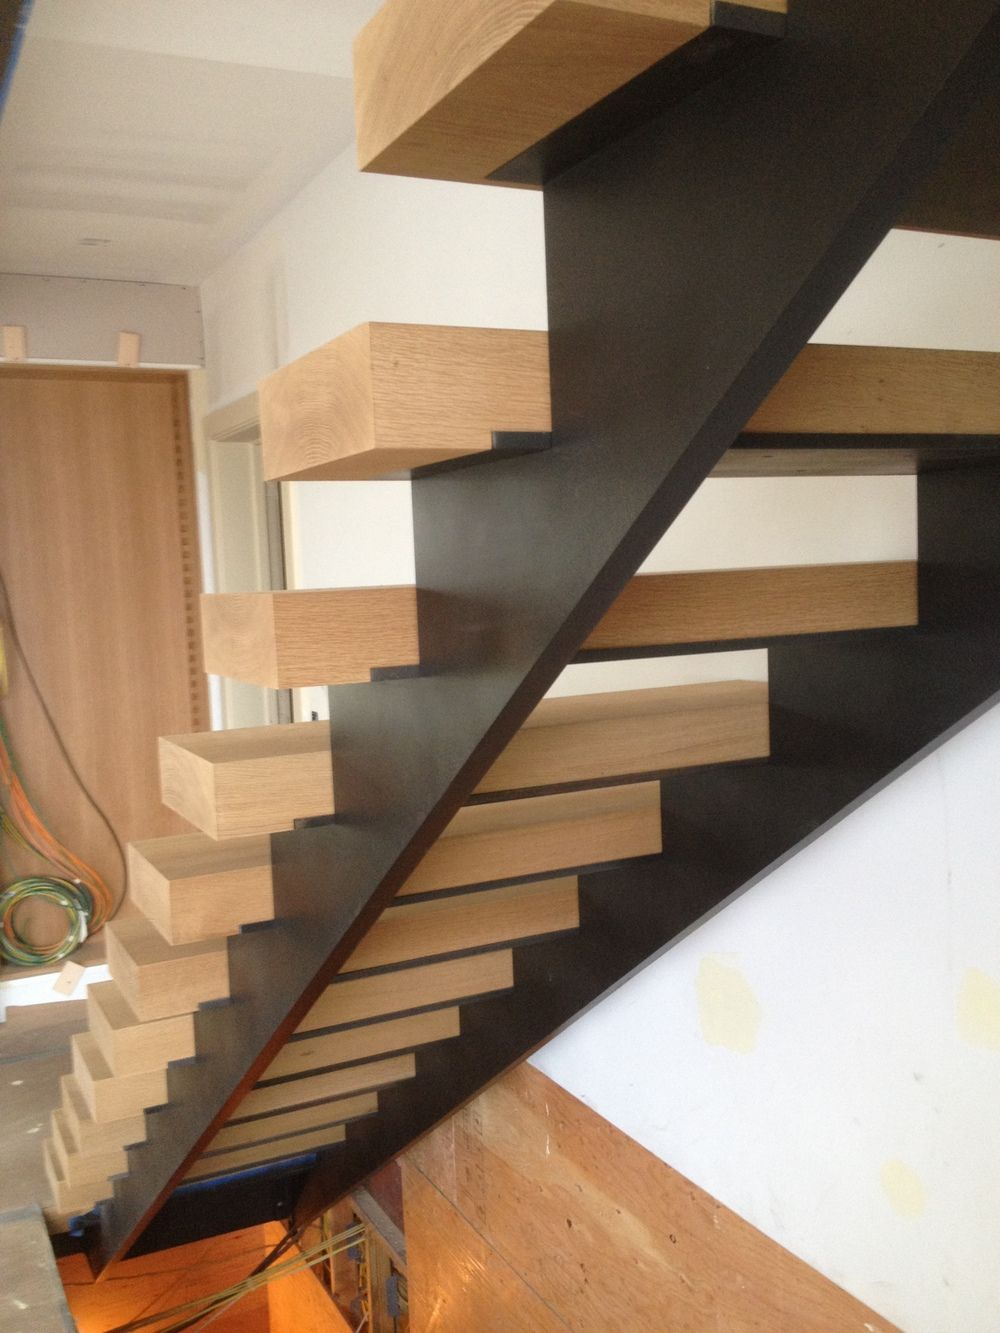 Best Image Result For Glulam Stair Treads Timber Stair 400 x 300